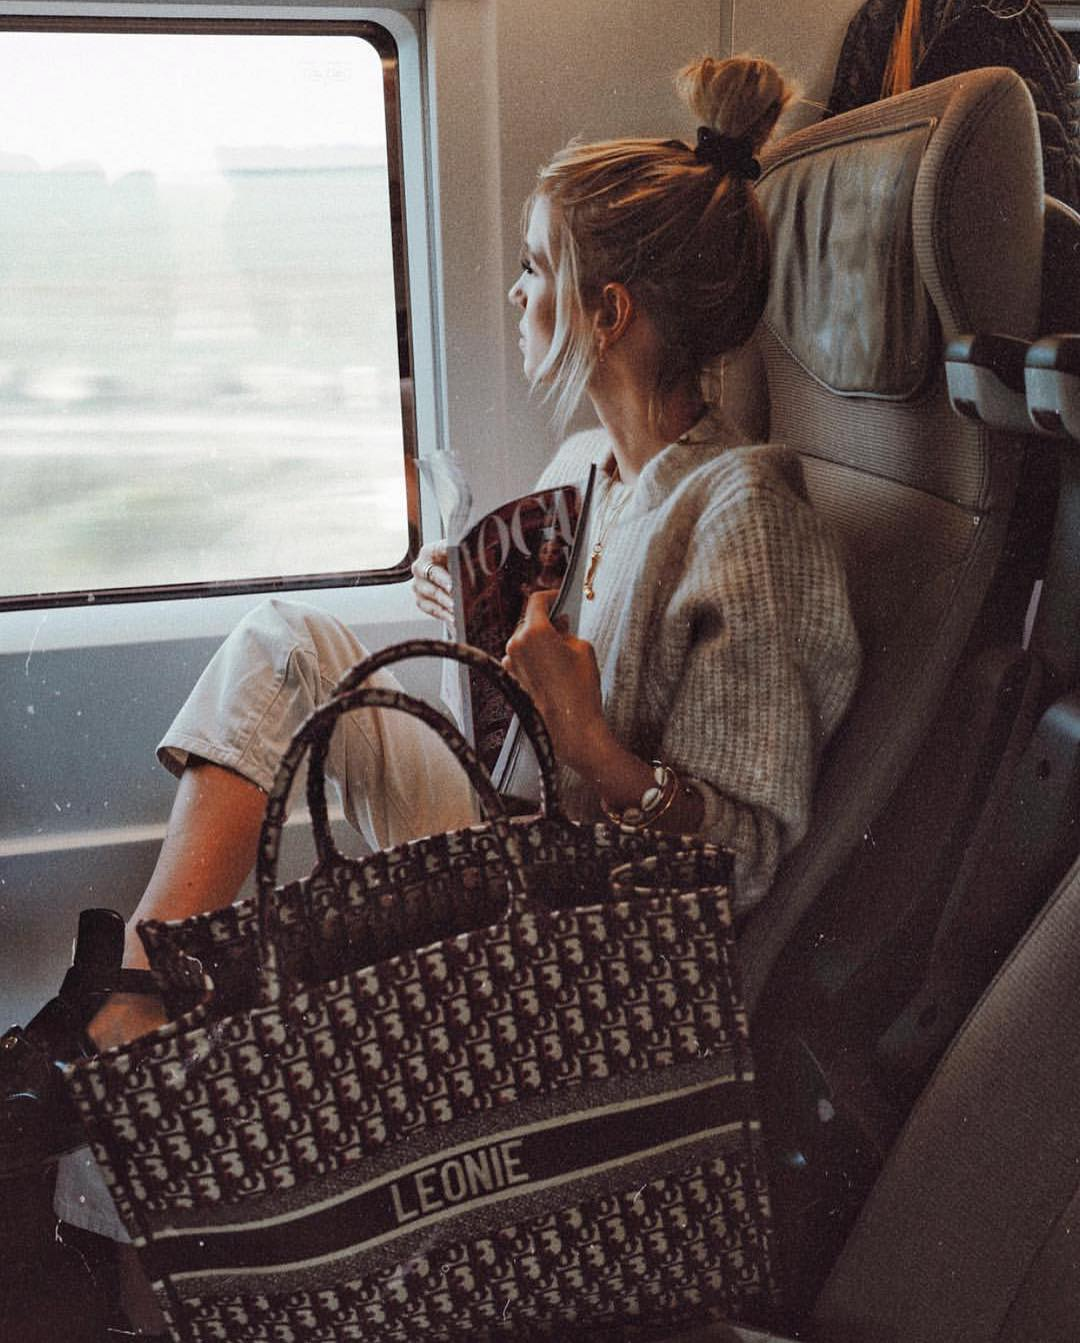 Oversized Sweater, Regular Jeans And Cut-Out Boots For Casual Travel 2019